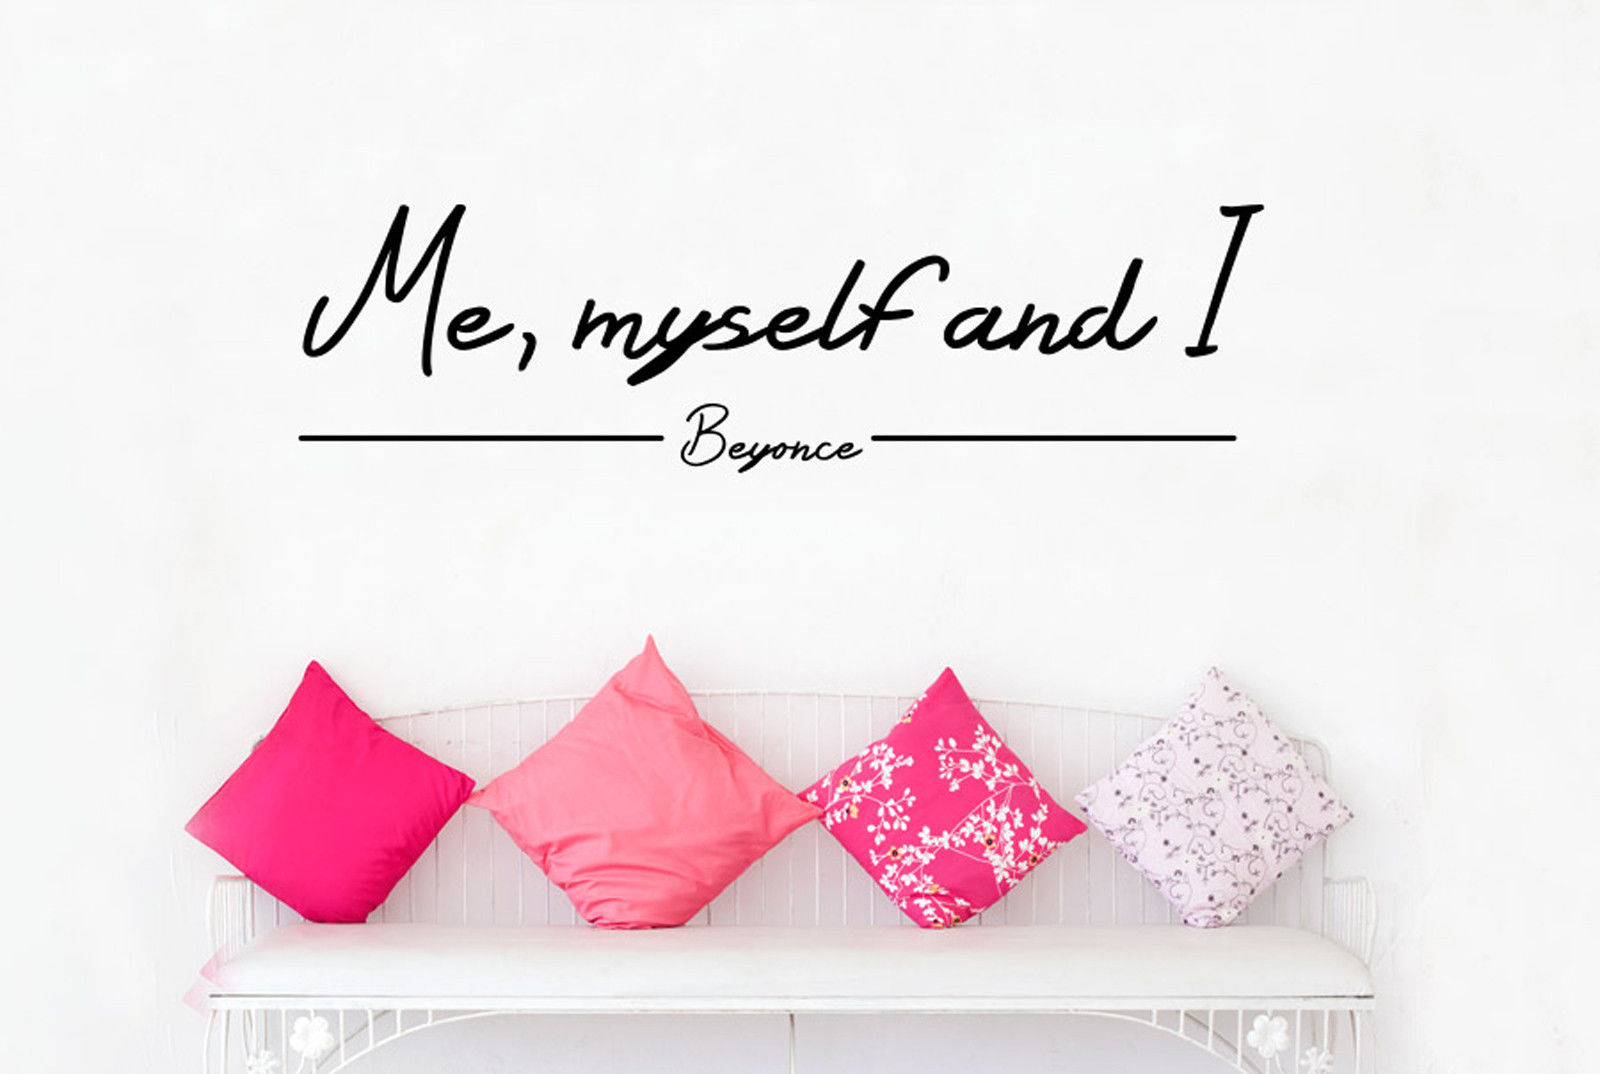 Us 799 Beyonce Me Myself And I Wall Sticker Free Shipping In Wall Stickers From Home Garden On Aliexpresscom Alibaba Group